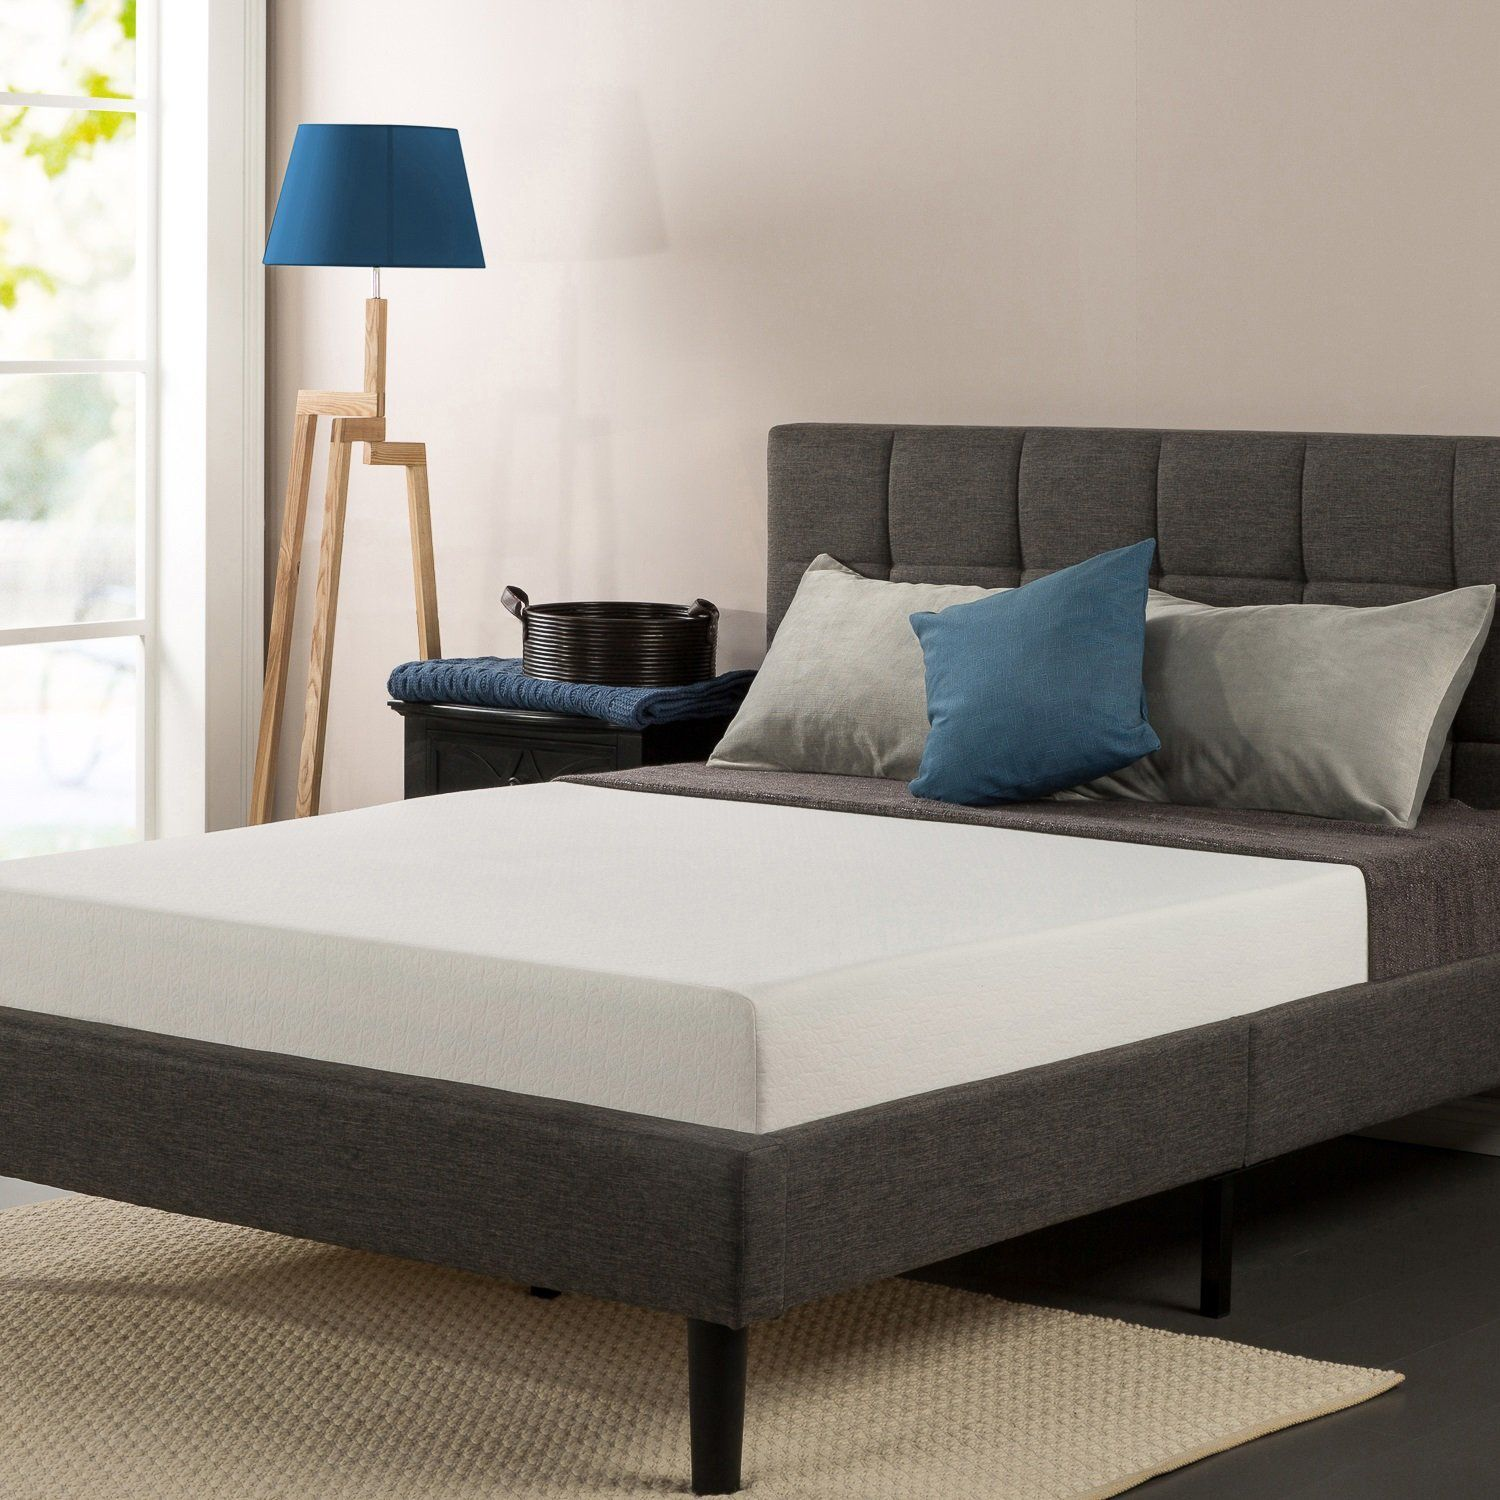 The 7 Best King Mattresses to Buy in 2017